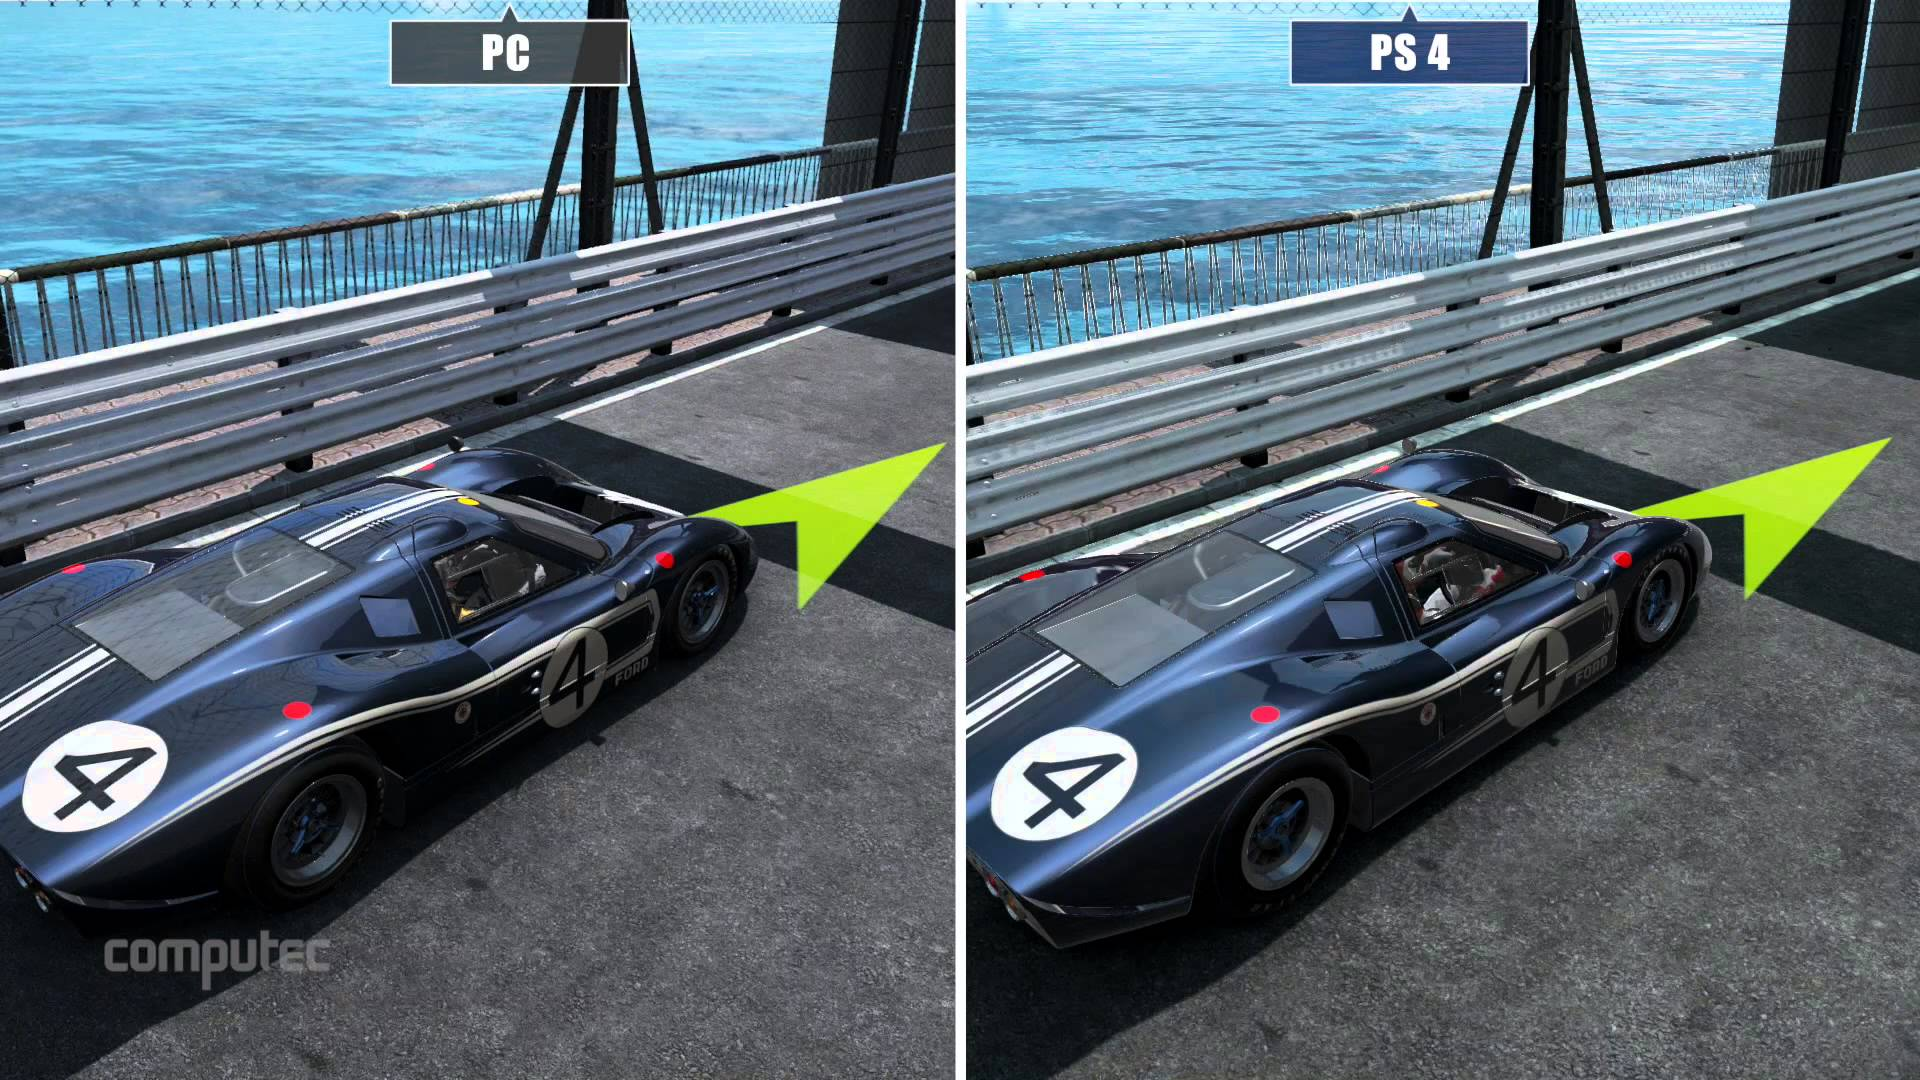 Project CARS PC Vs PS4 Comparison